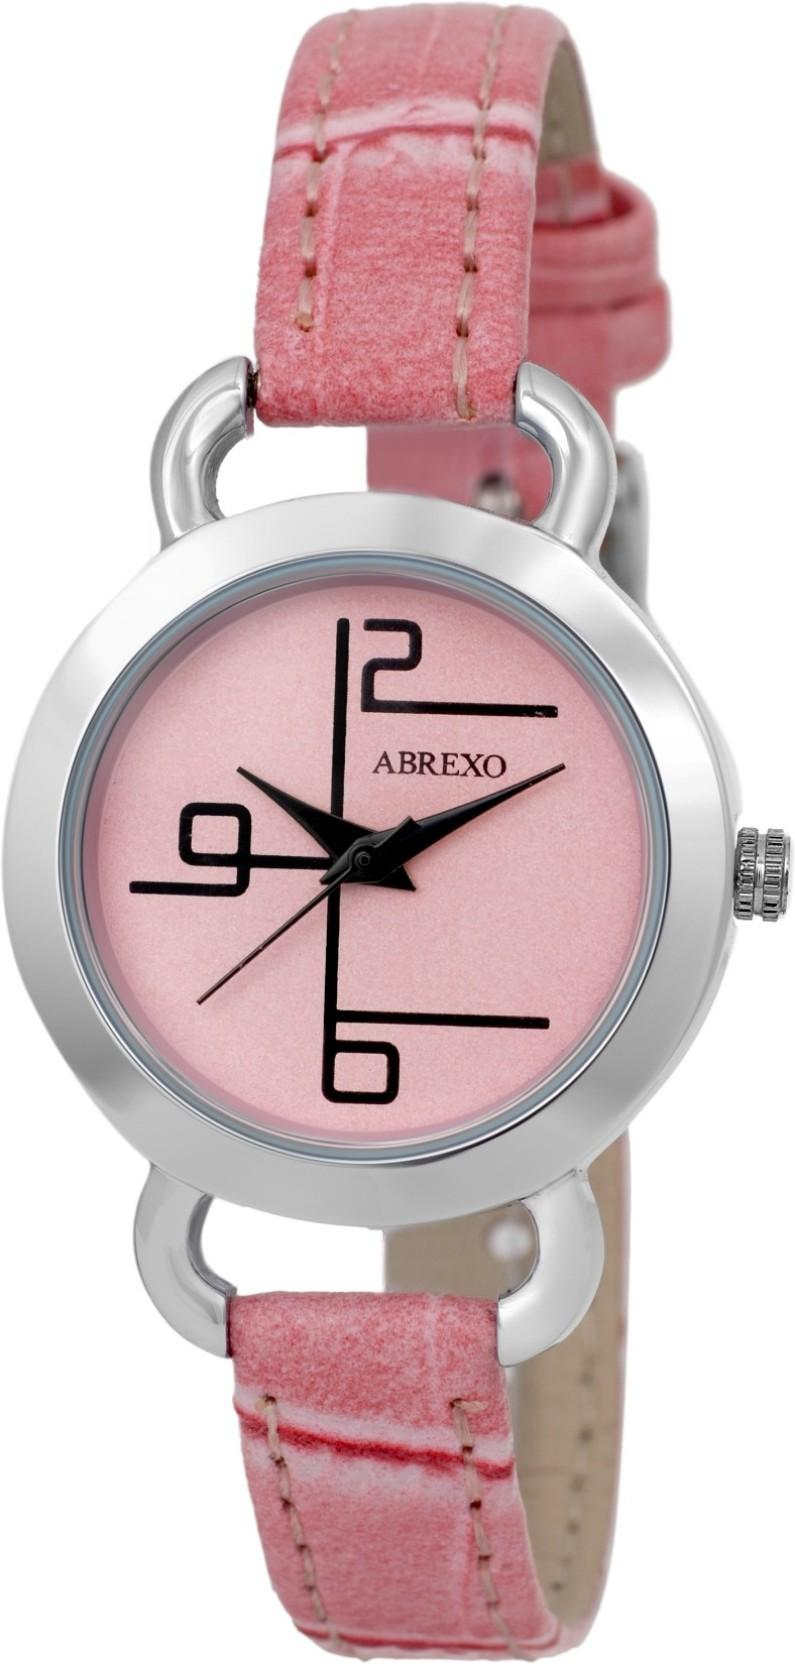 Abrexo Abx-2018-SLM-PINK MIDTRACK Watch - For Women